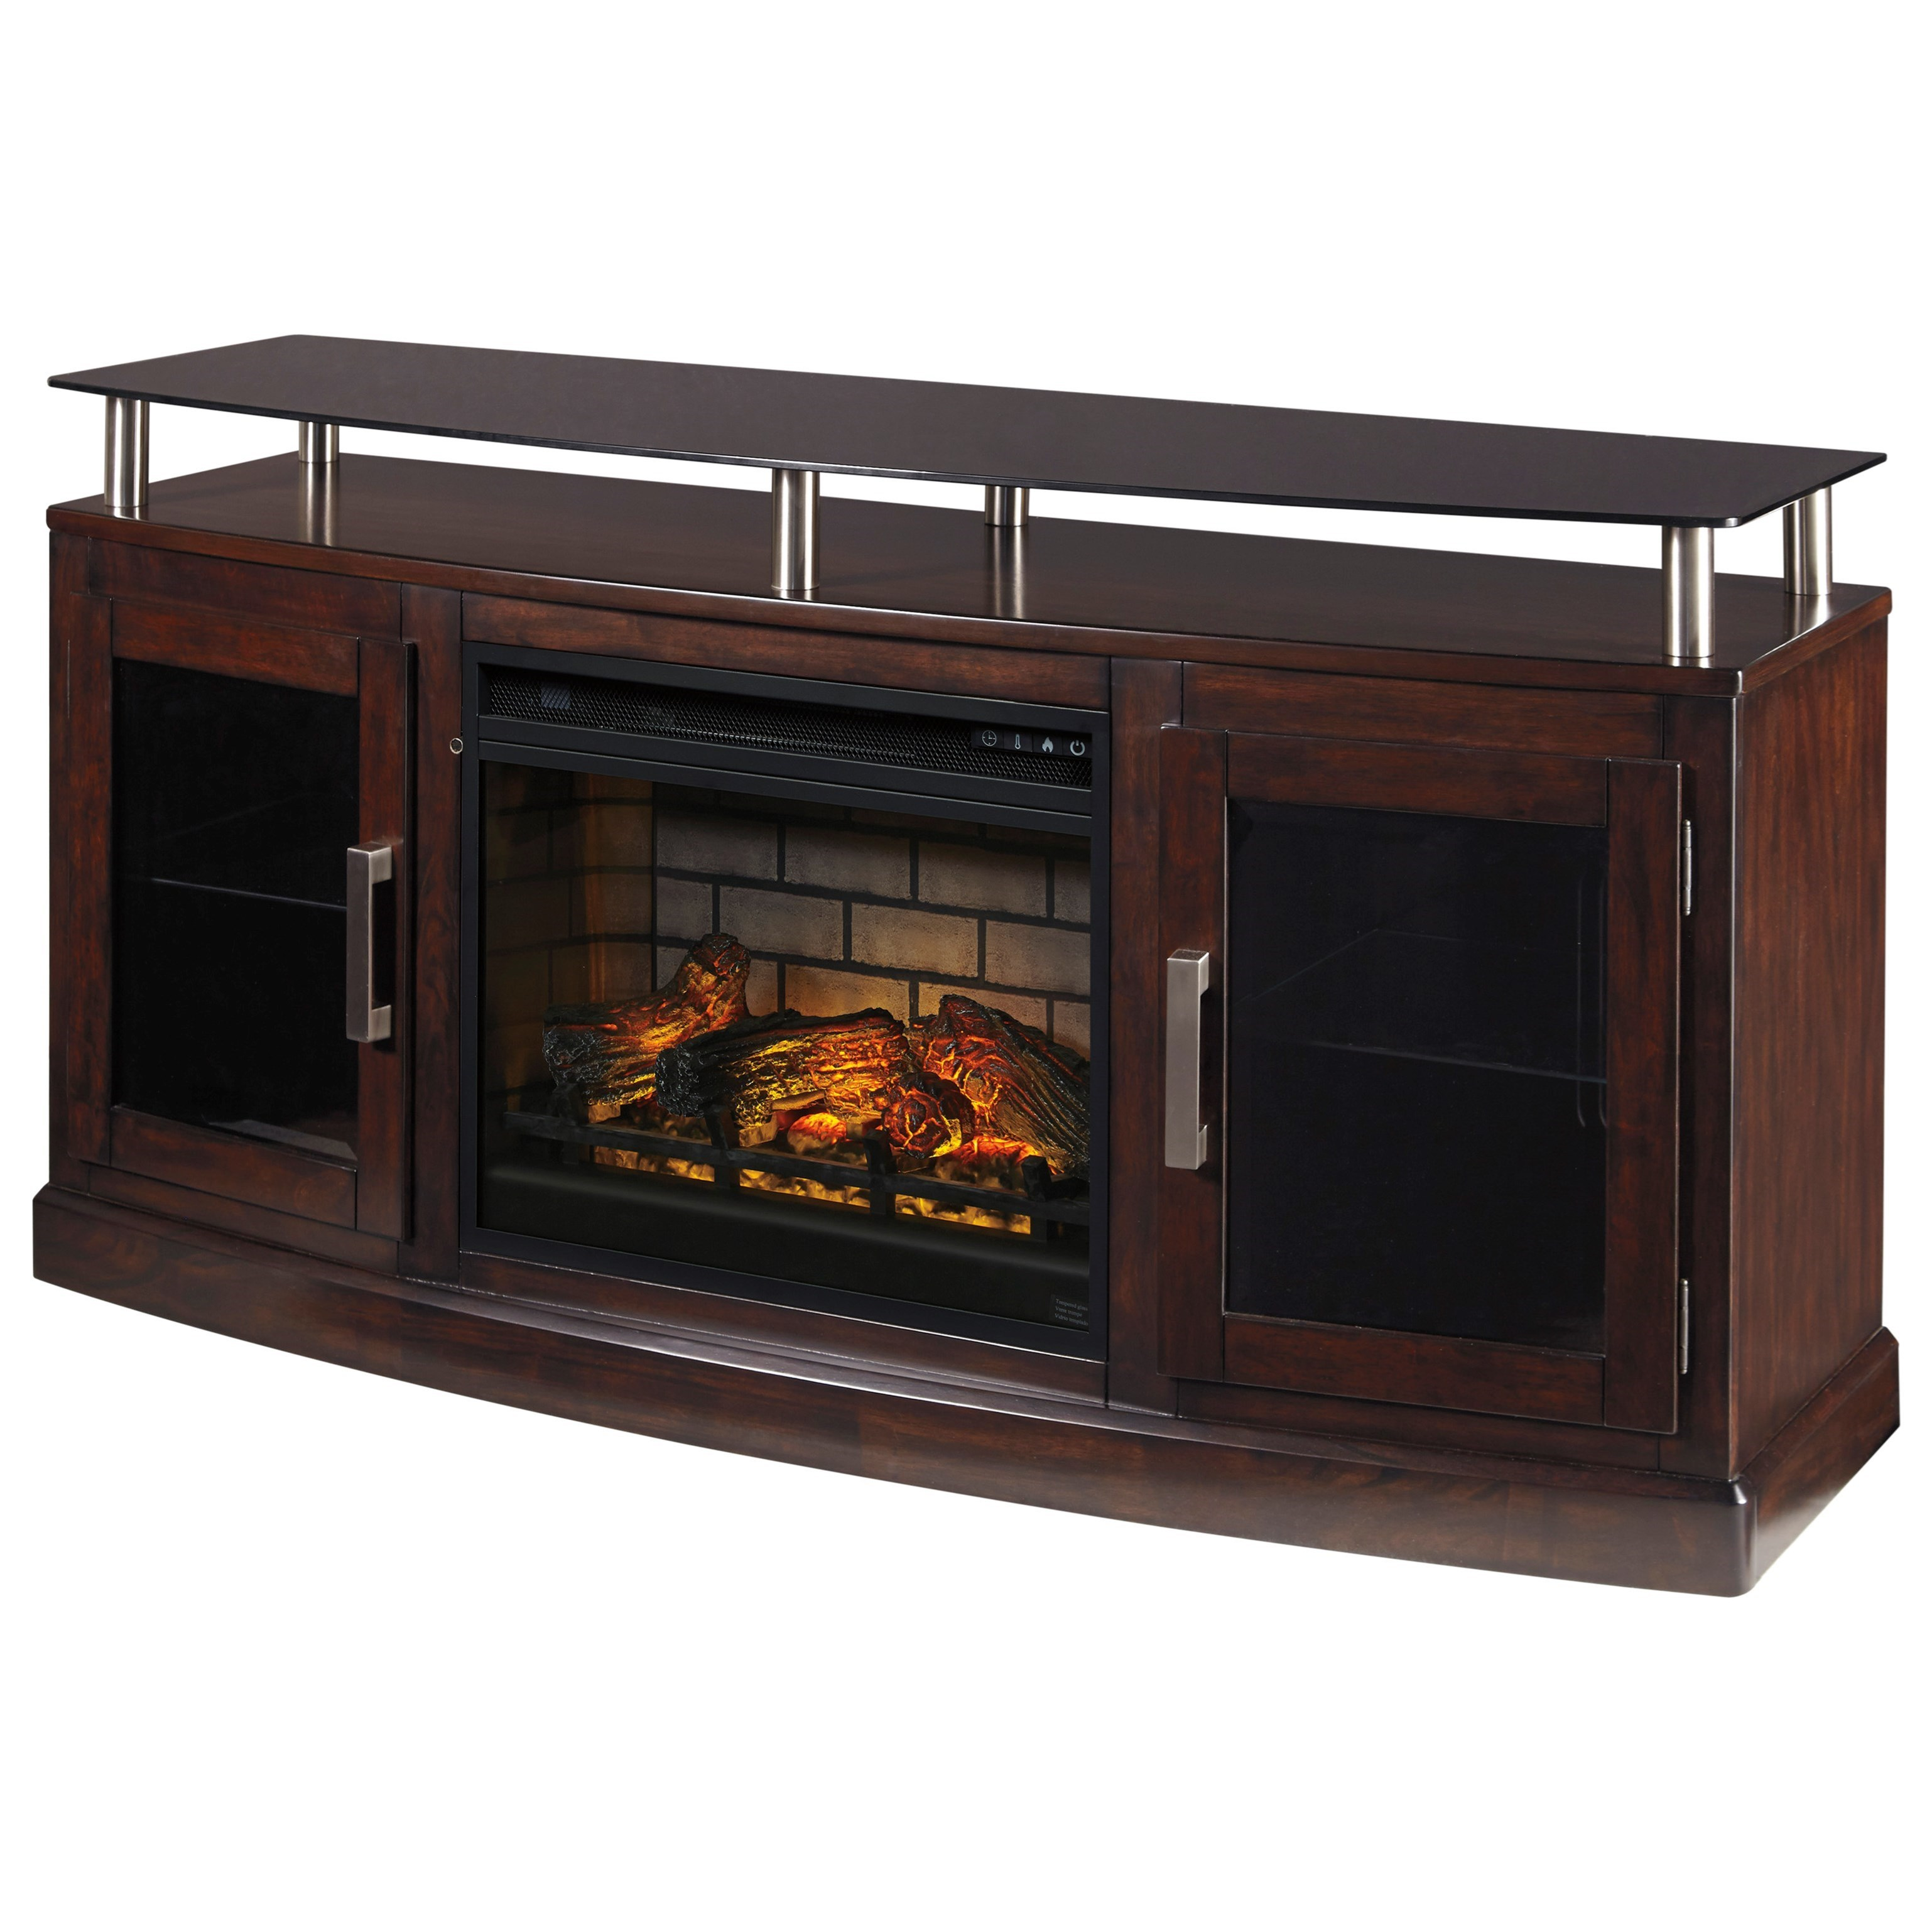 Chanceen Medium TV Stand with Fireplace Insert by Signature Design by Ashley at Northeast Factory Direct